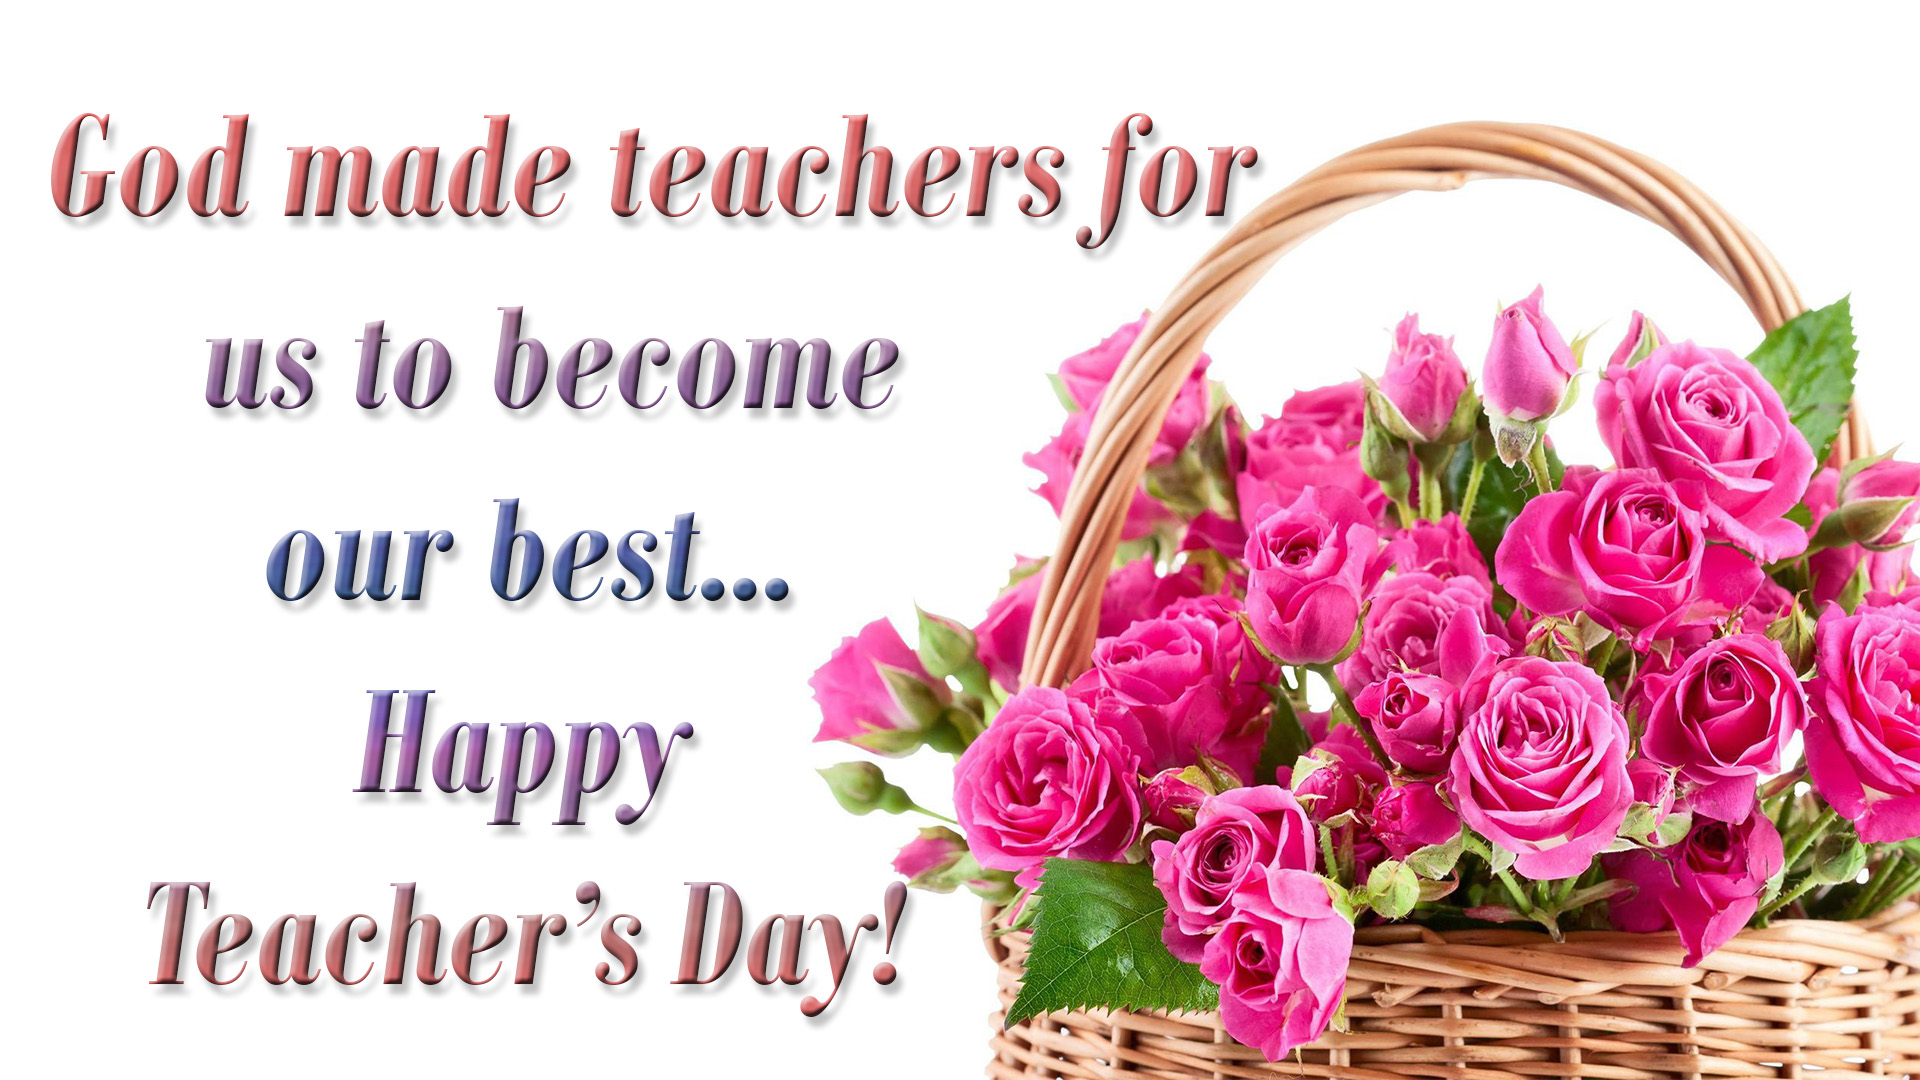 happy teachers day wishes images teacher s day